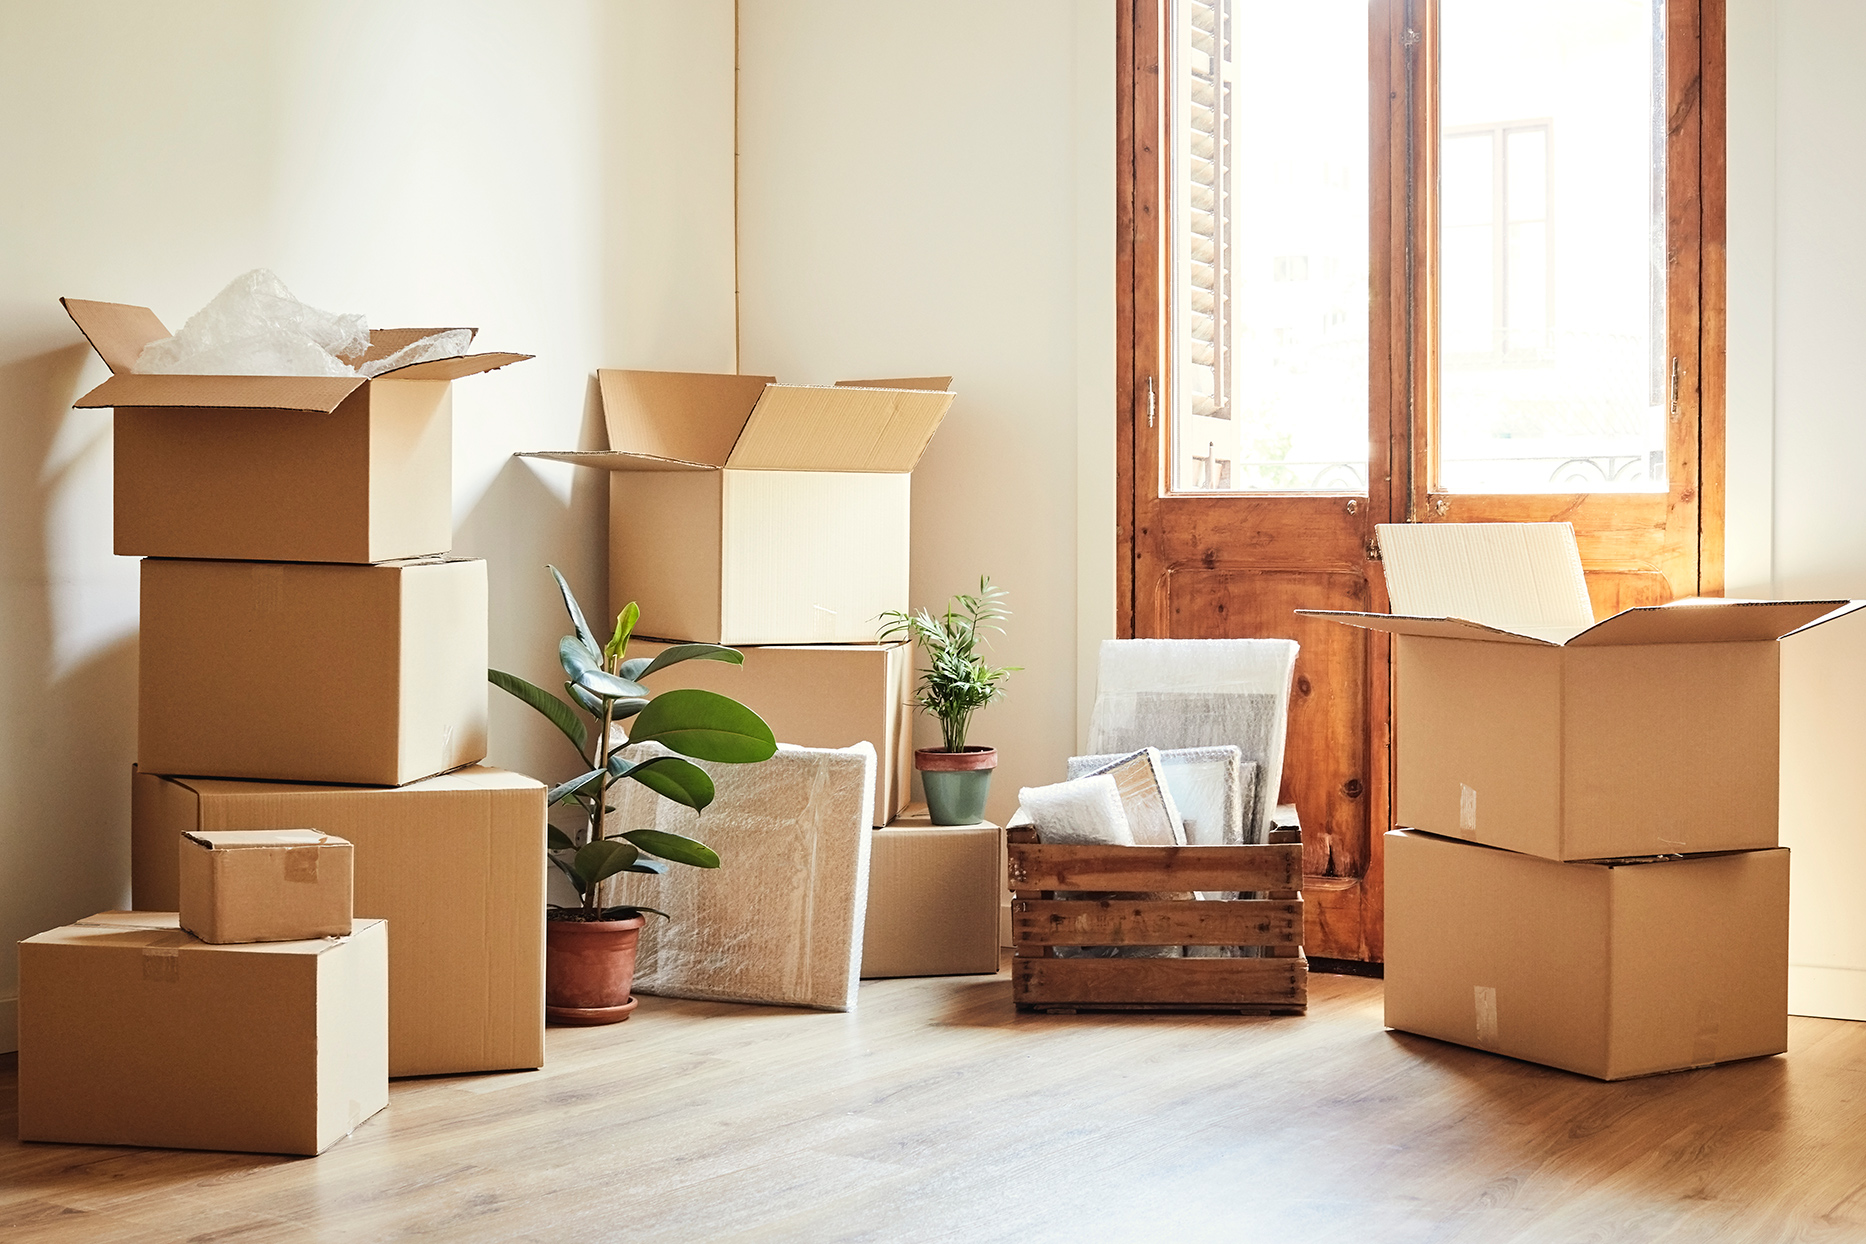 Moving boxes and potted plants at new home